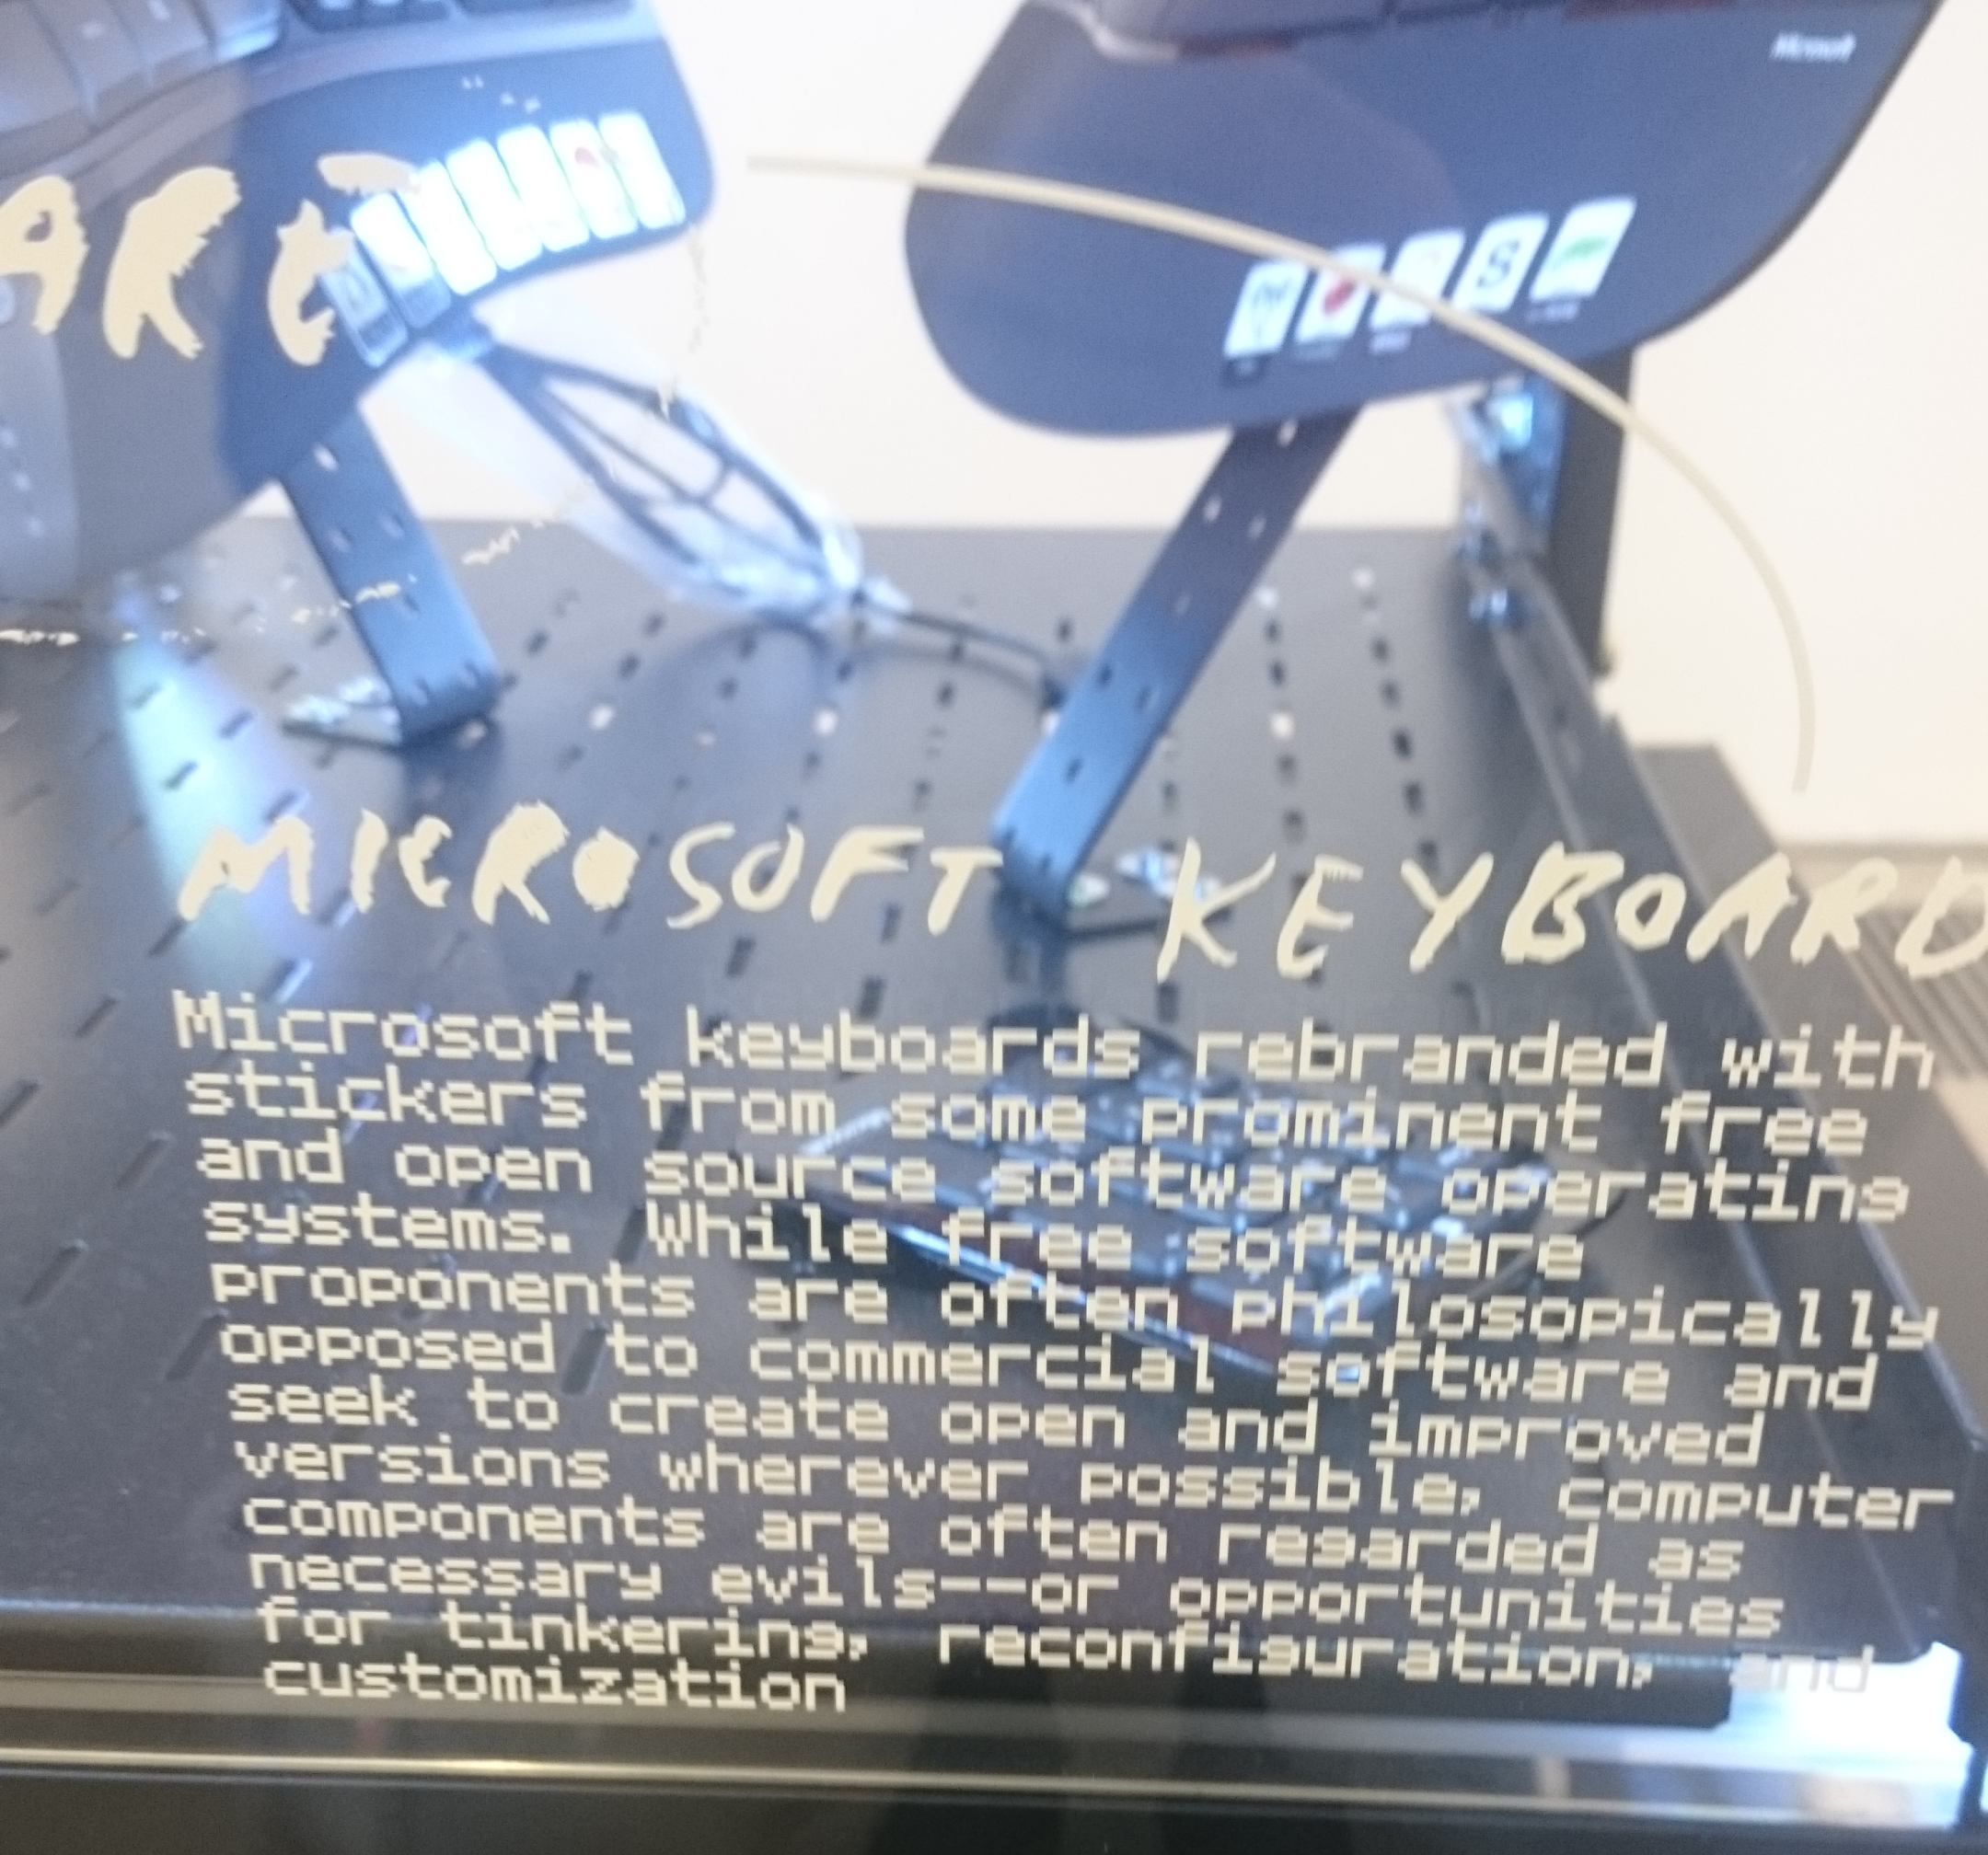 Open Source Stickers on Microsoft Keyboards - Art Exhibit - London